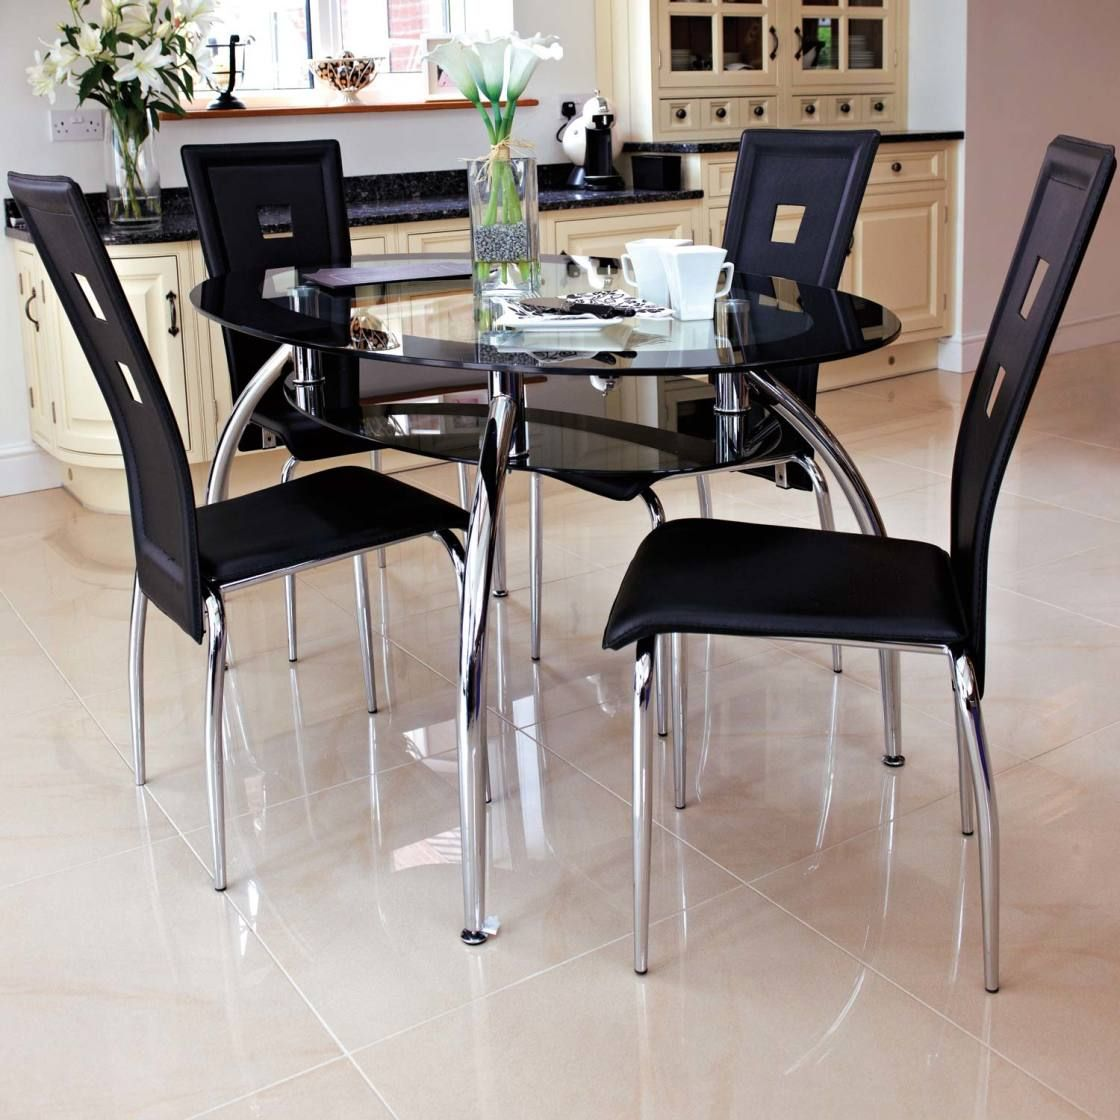 Contemporary Round Dining Room Tables Unique Contemporaryblackdiningroomfurnituresetideasfornewhome Design Inspiration